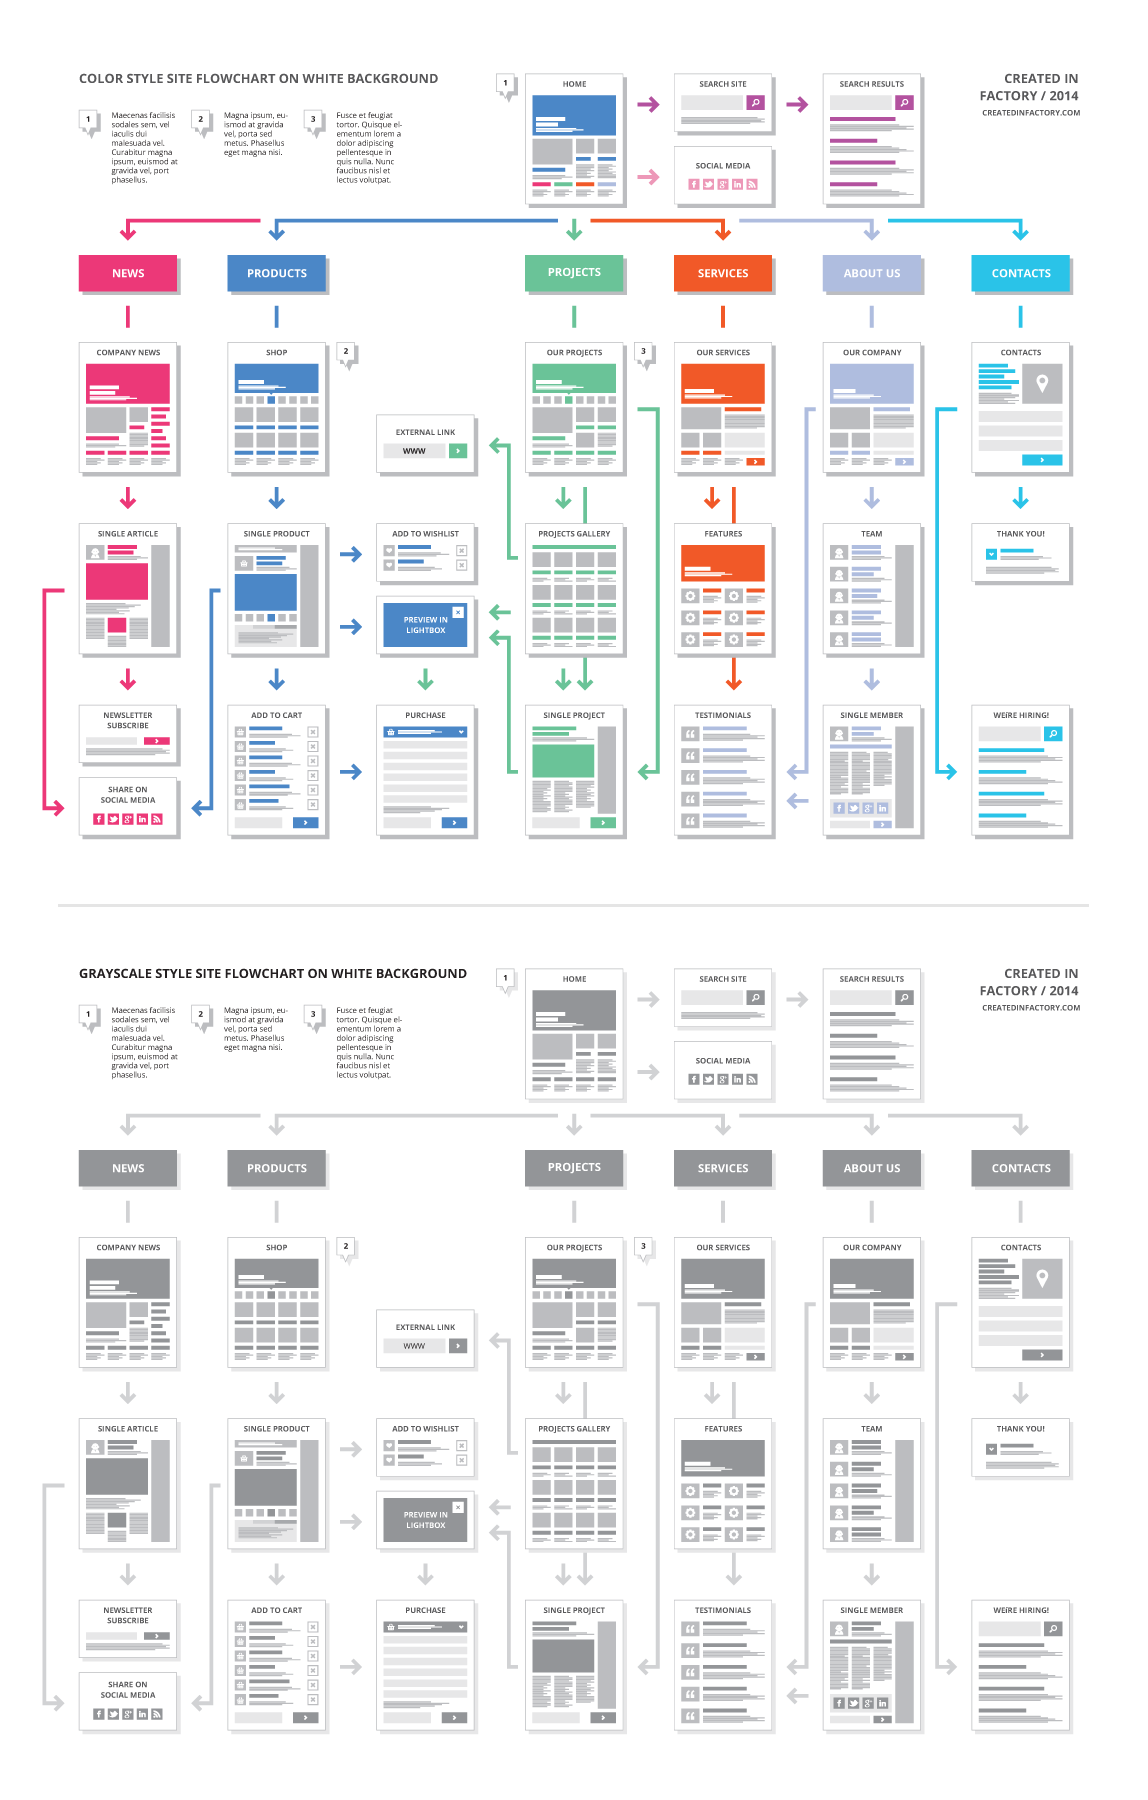 Easyone website flowchart template by created in factory on creative market also rh pinterest